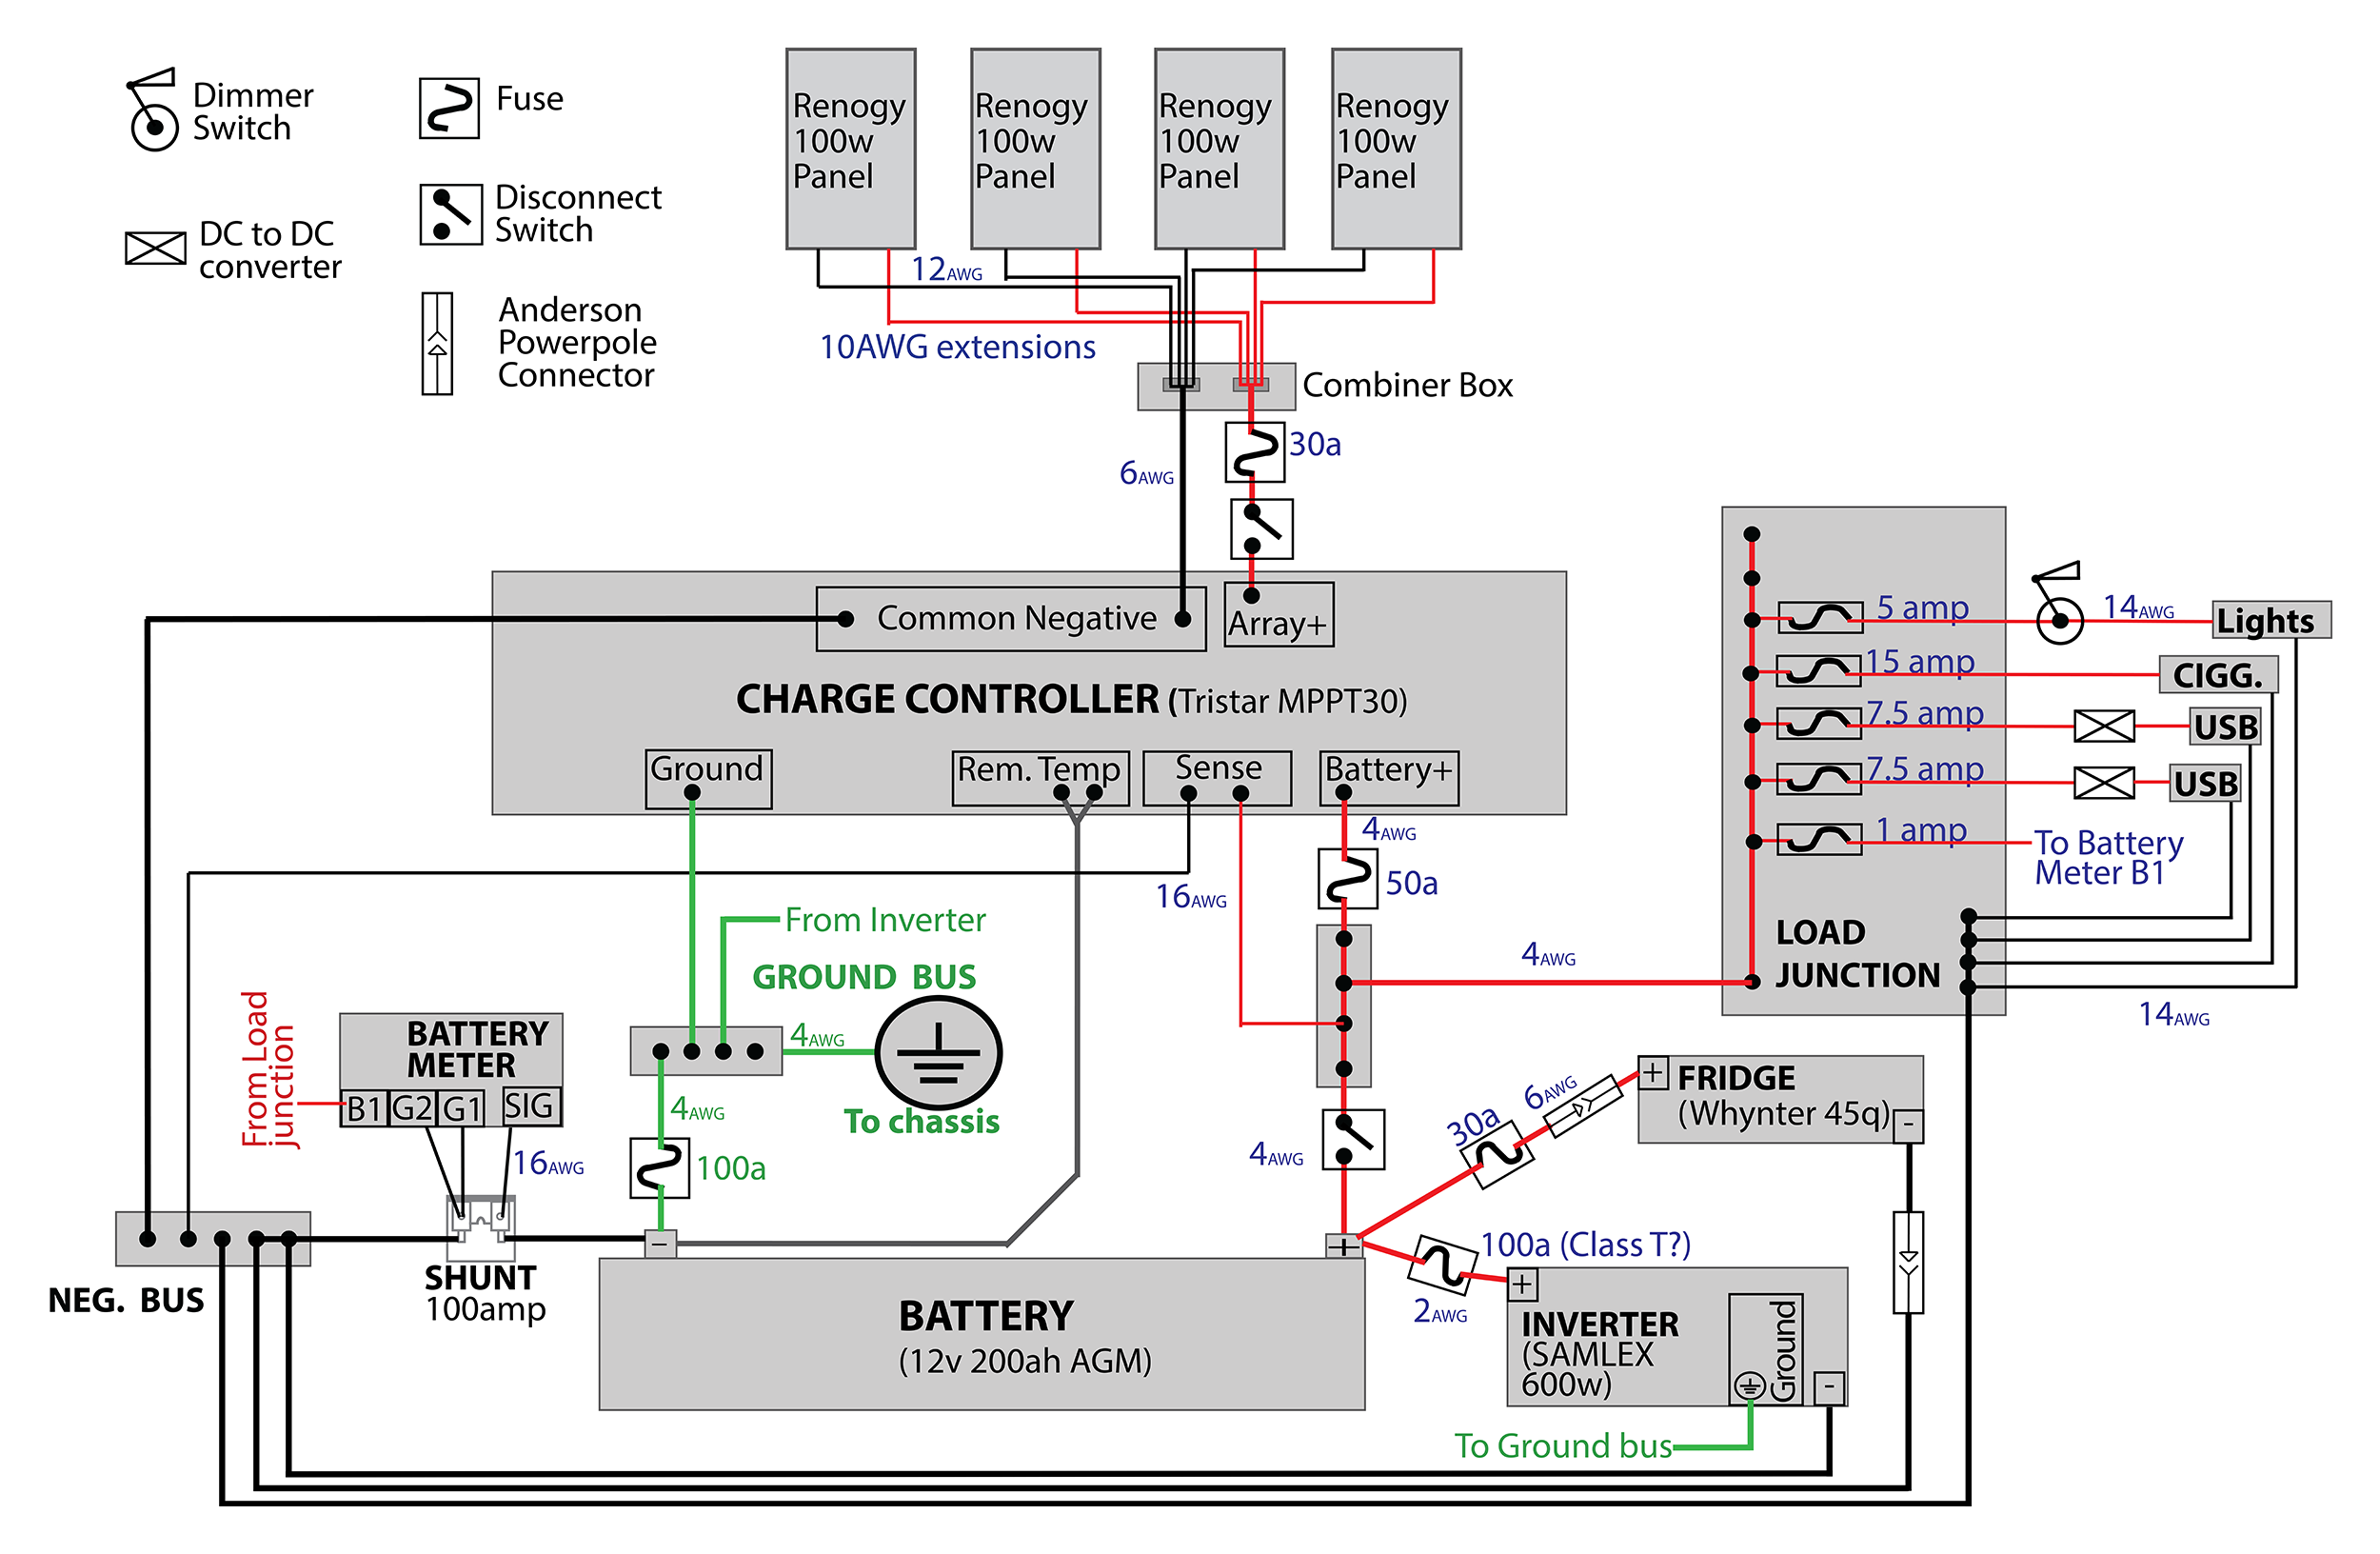 Please Give Input On My Electrical System Design Battery Indicator Wiring Diagram Here Is A Link To Large Version That You Can See Better